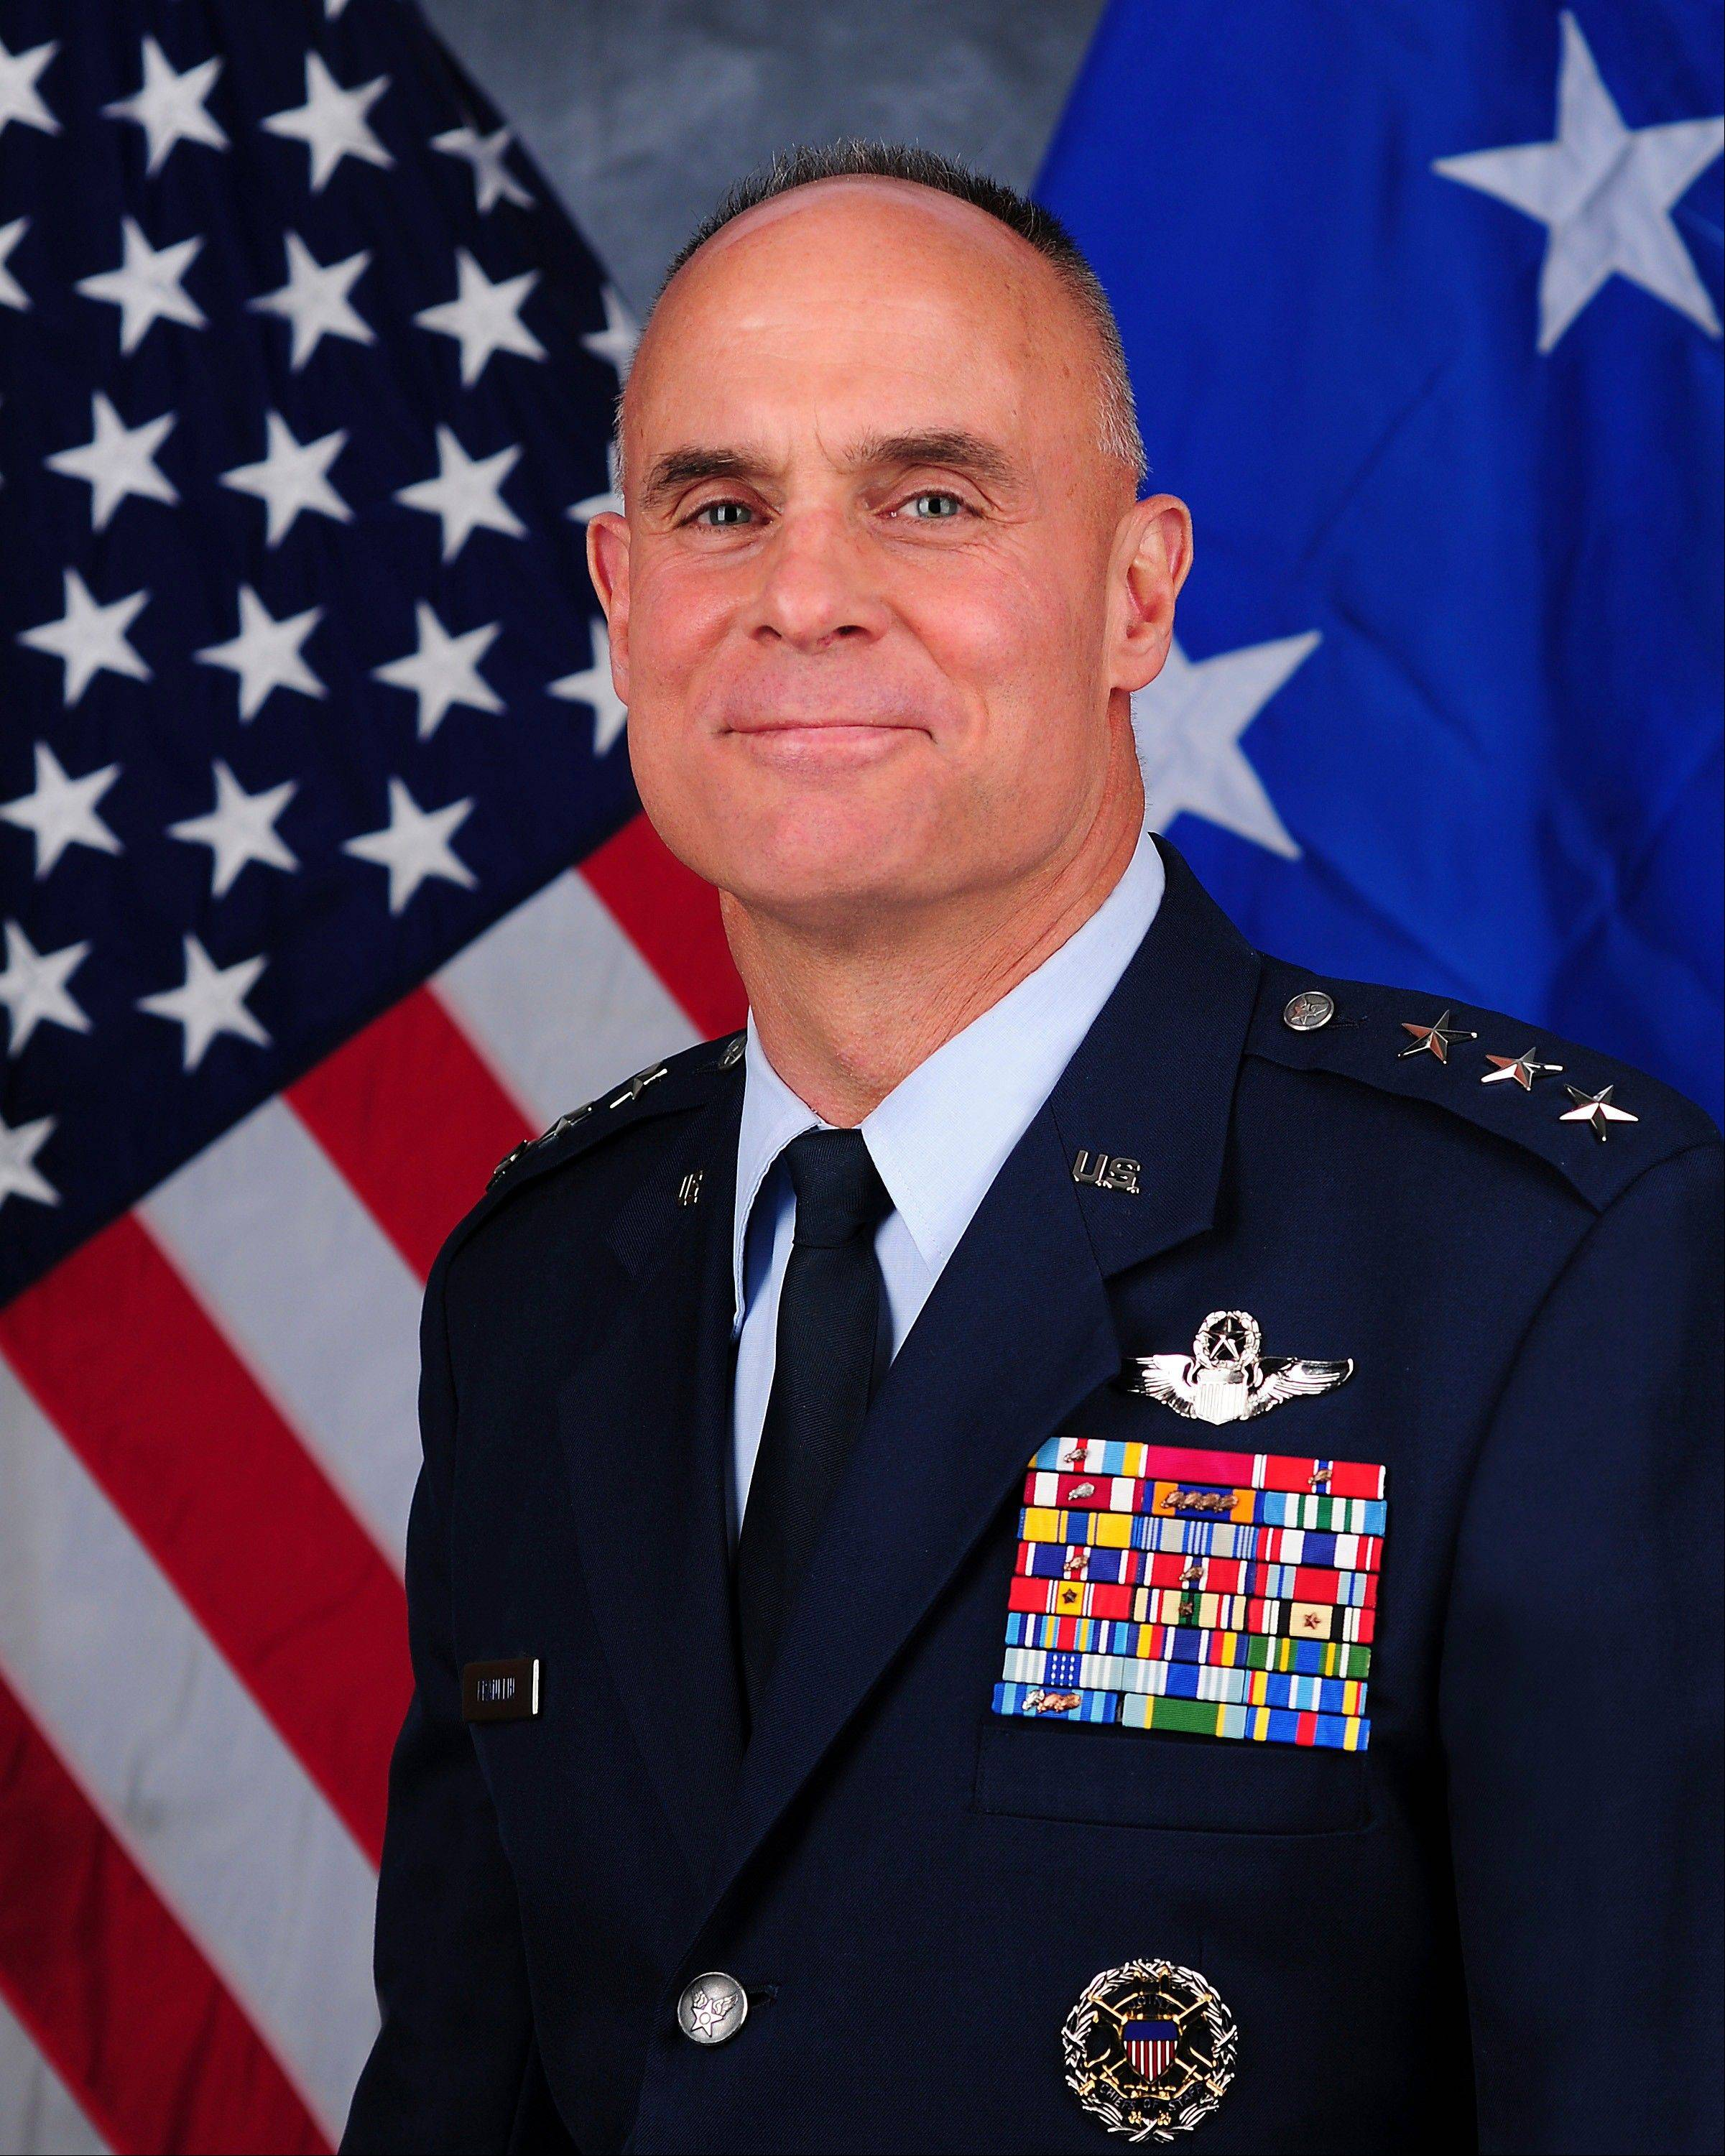 The case involving U.S. Air Force shows Lt. Gen. Craig Franklin, who dismissed charges against a lieutenant colonel convicted of sexual assault, will be reviewed at the top levels of the Pentagon. Franklin's decision is fueling support for legislation that would prevent commanding officers from overturning rulings made by judges and juries at courts-martial proceedings.